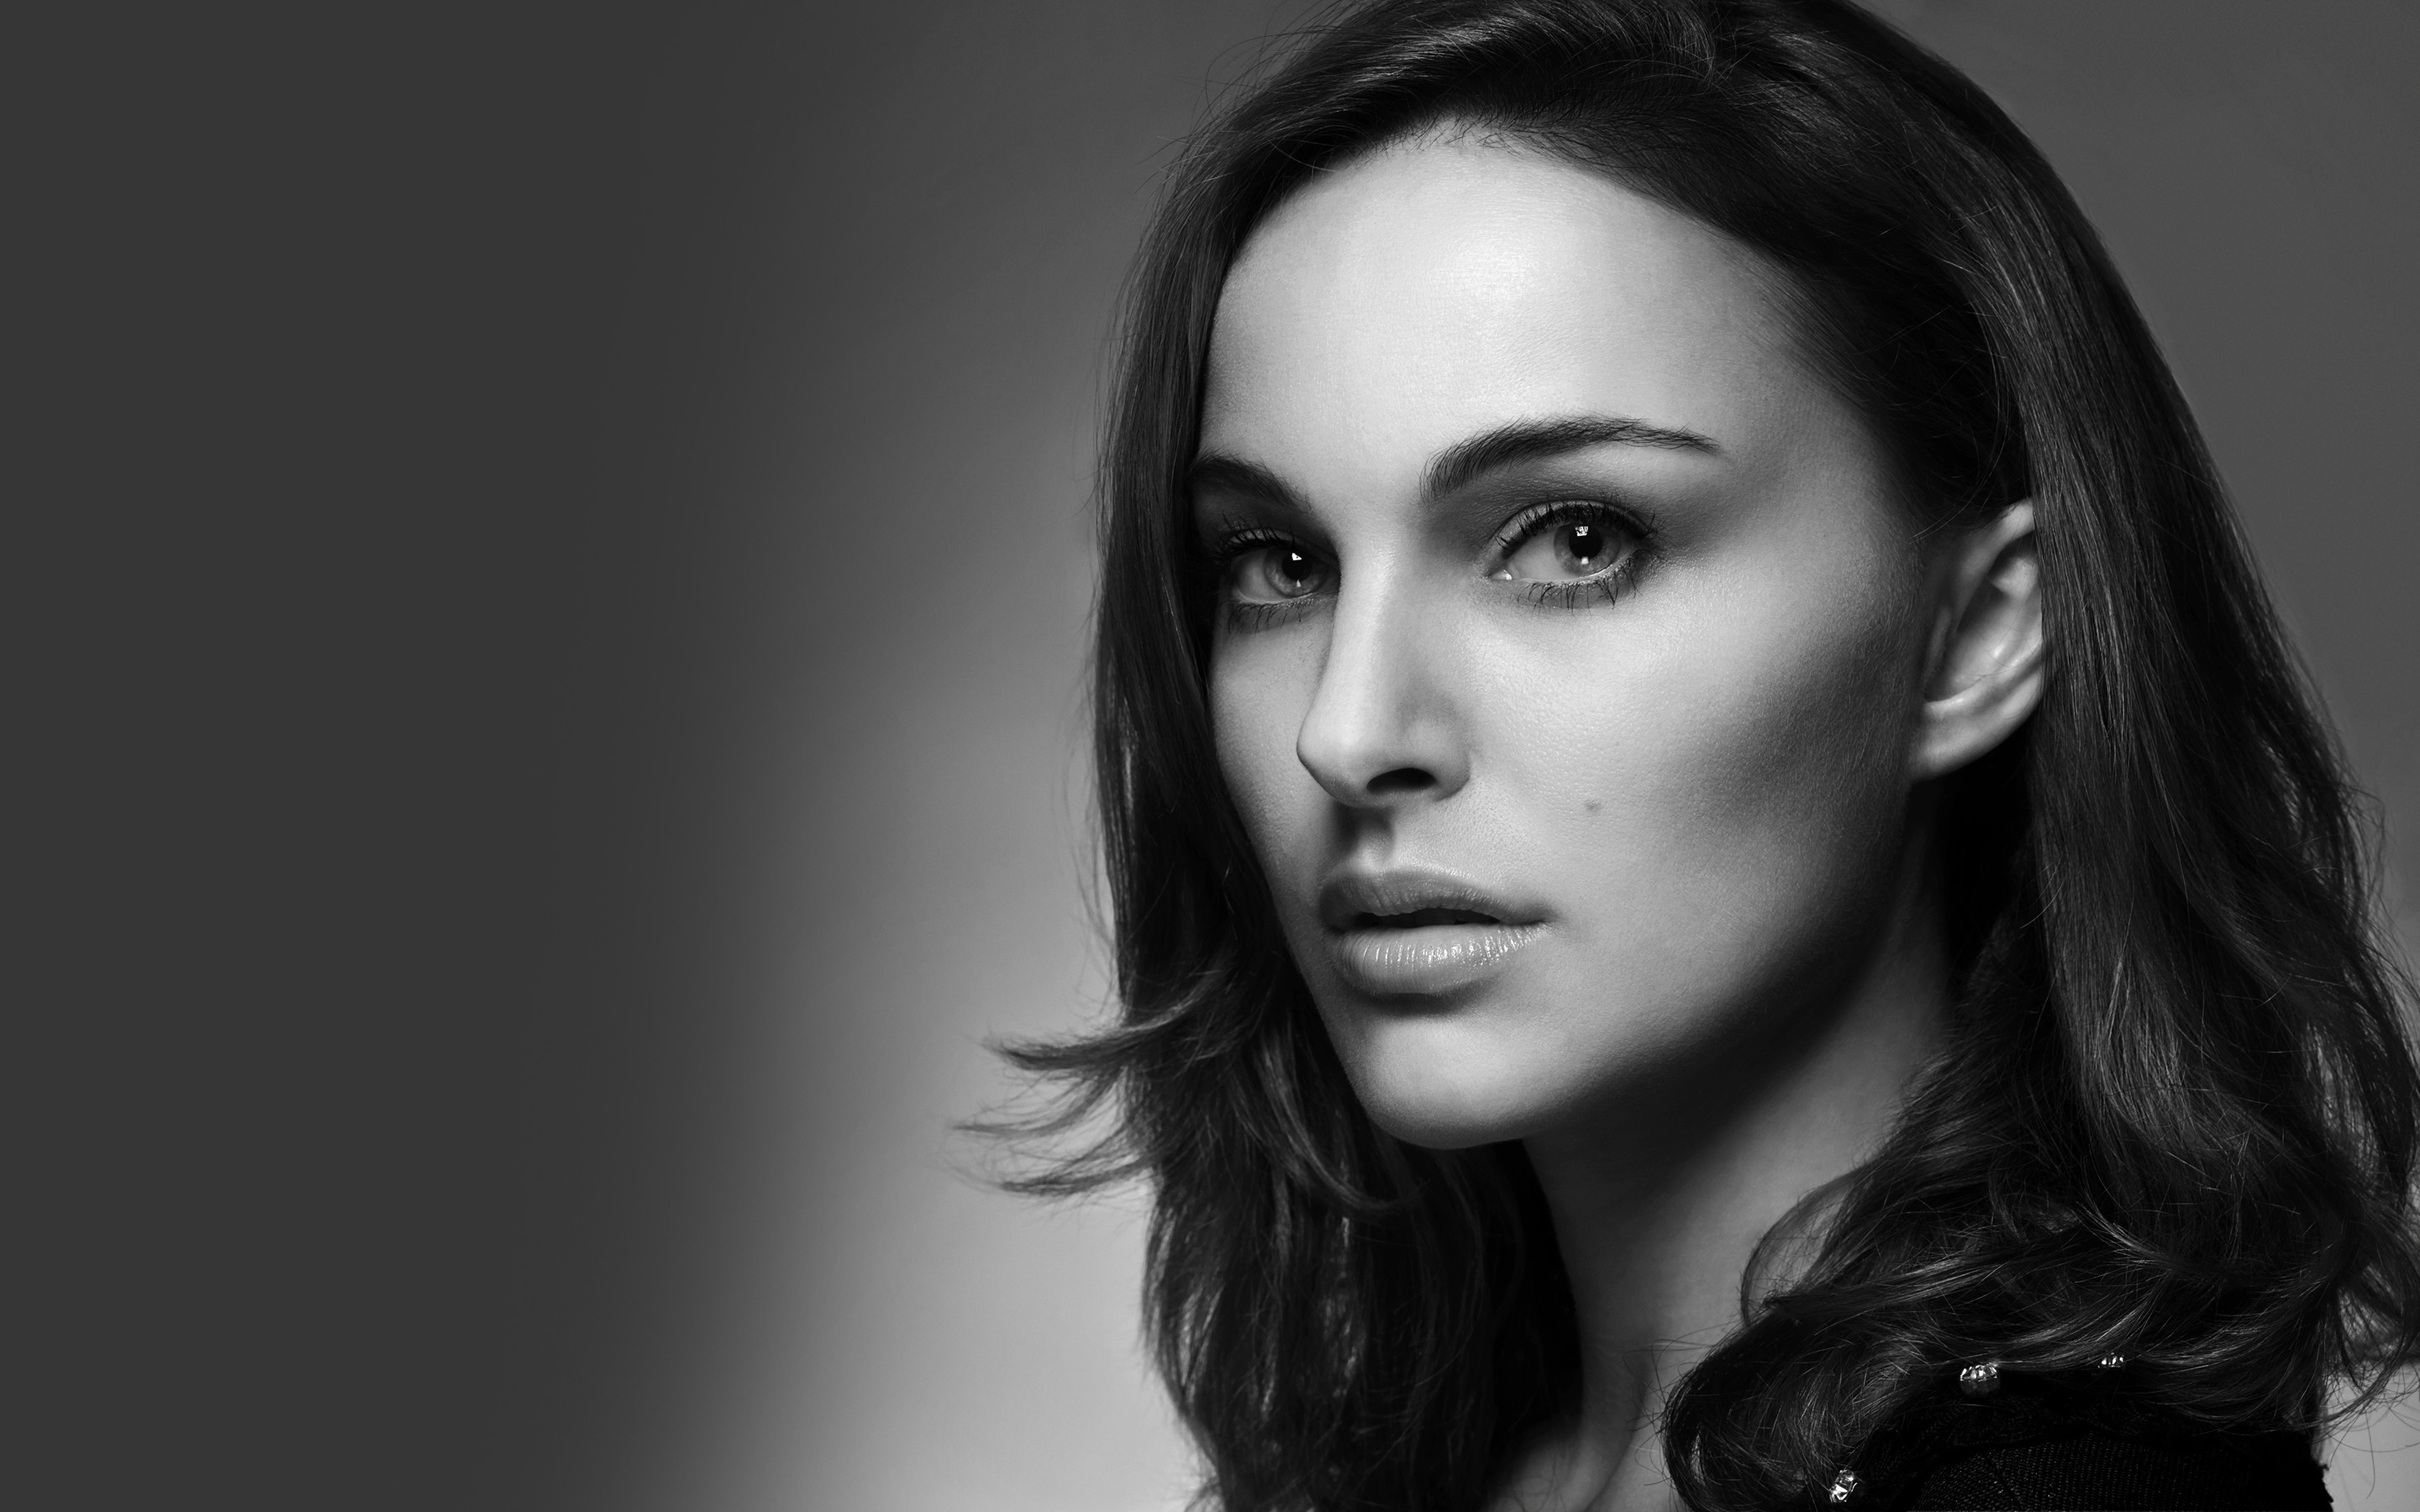 Natalie Portman Hollywood Actress Wallpapers In Jpg Format